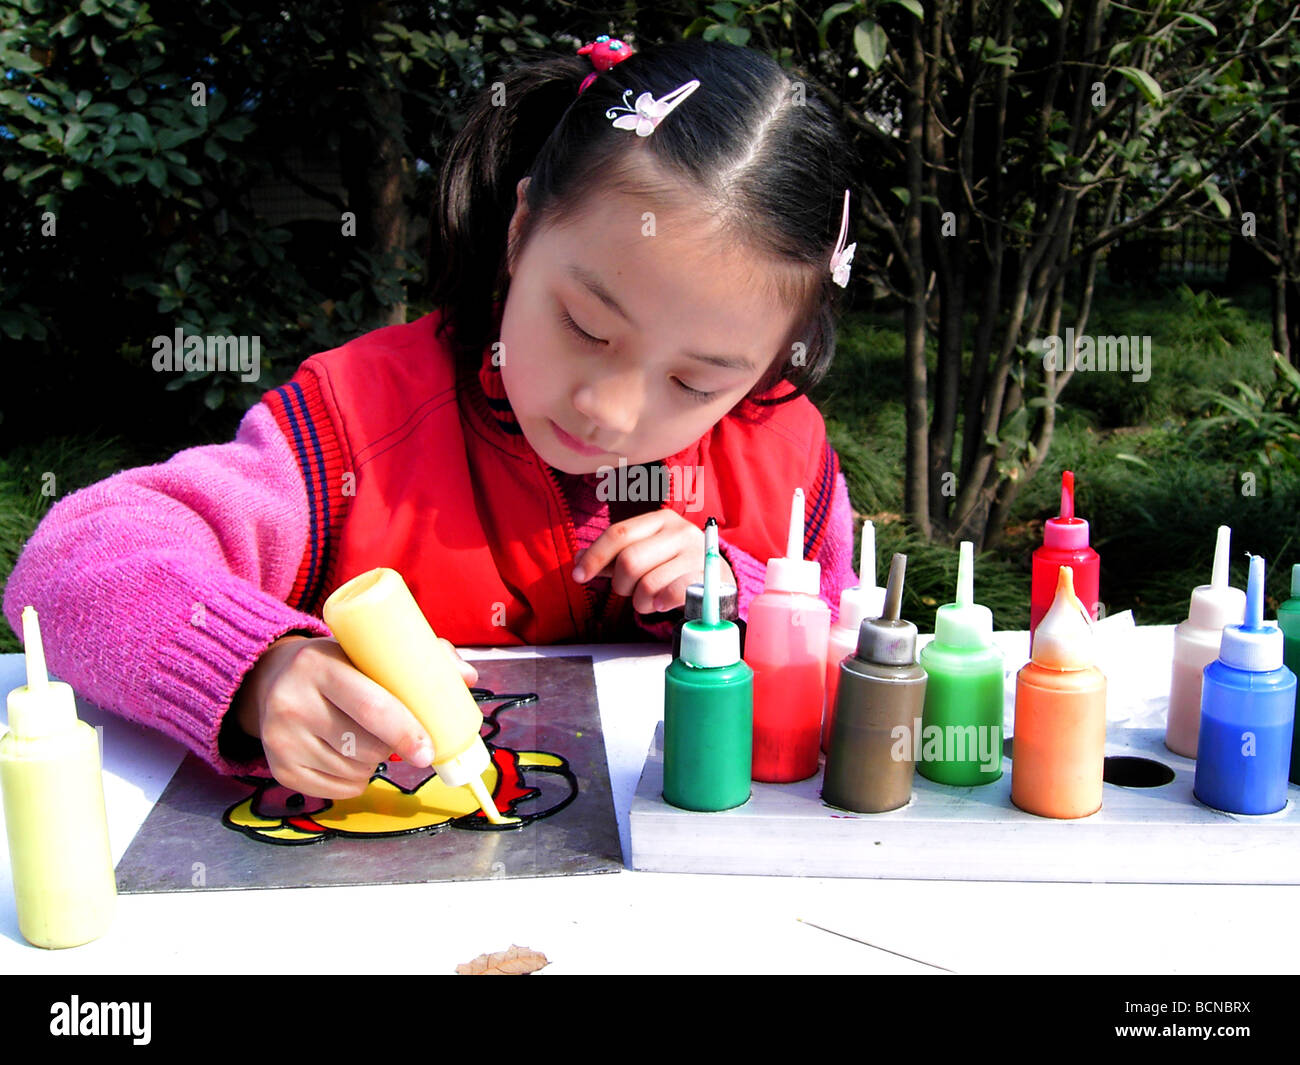 Chinese girl creating tempera painting, Shanghai, China - Stock Image